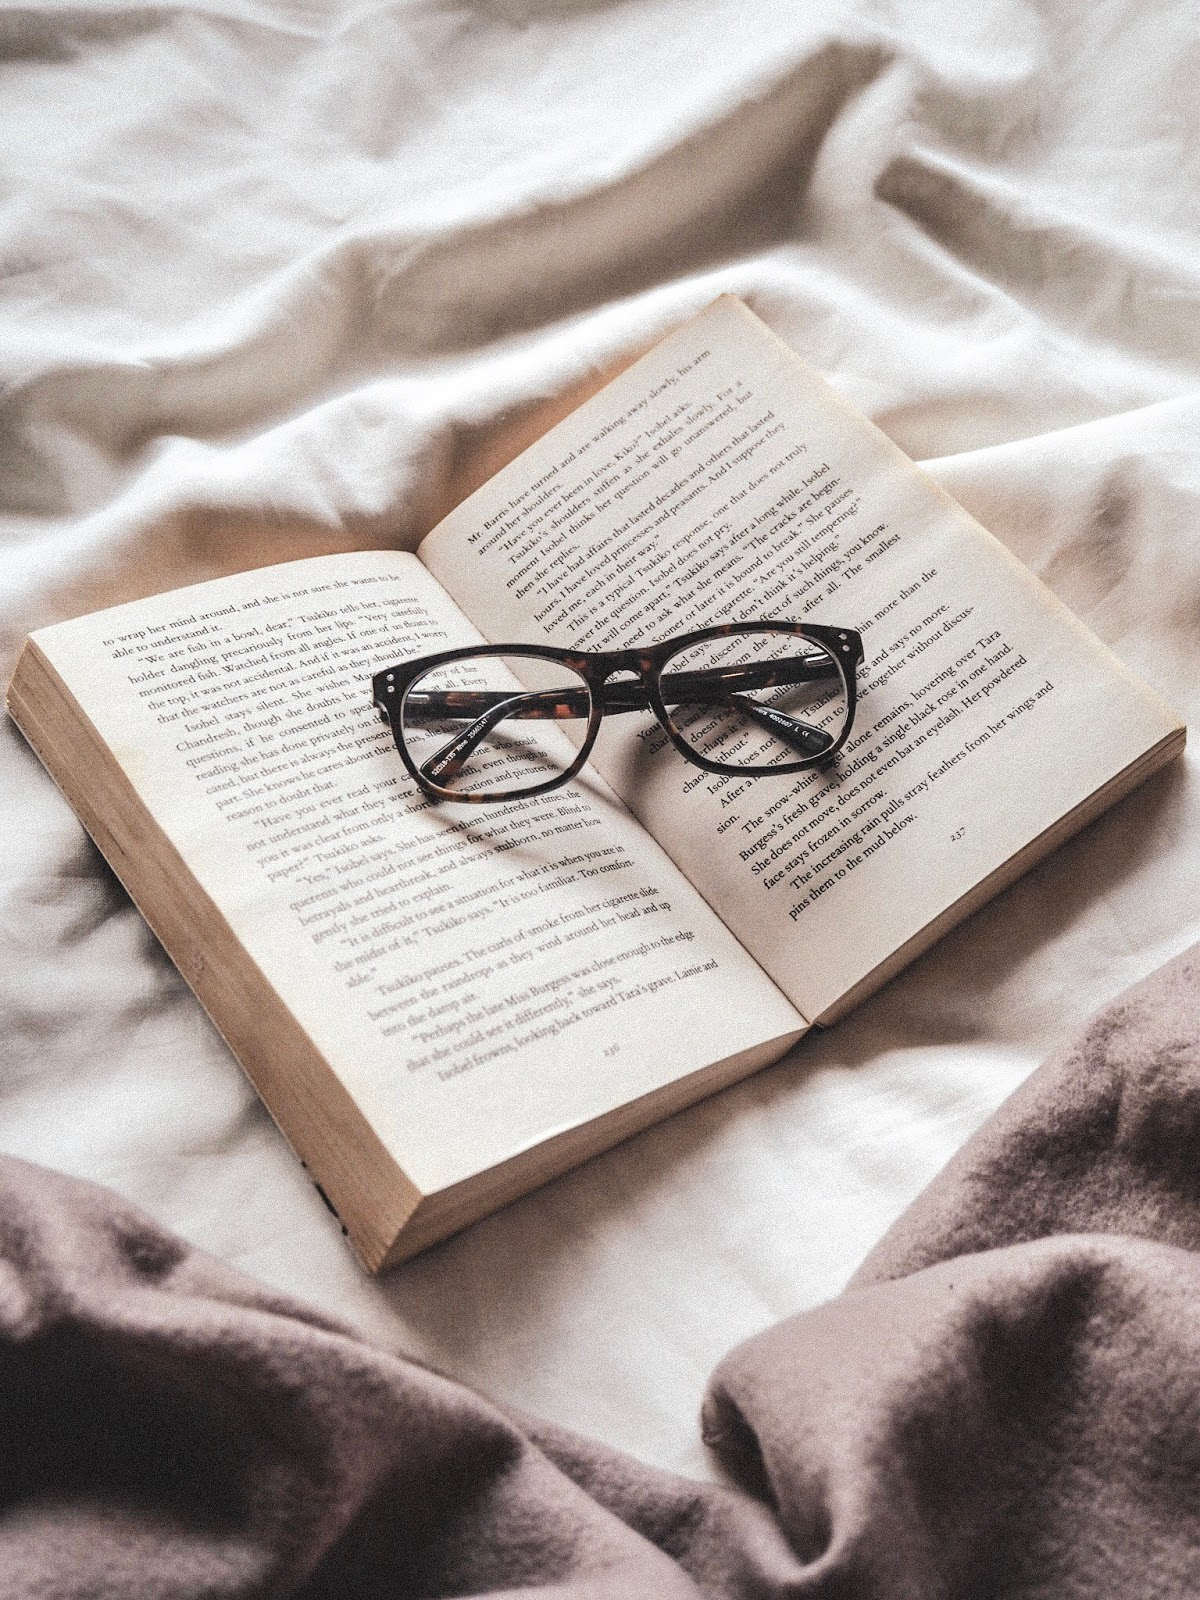 A flatlay of a open book placed on a white bed sheet with brown reading glasses on top and a brown throw peeking out from the left corner